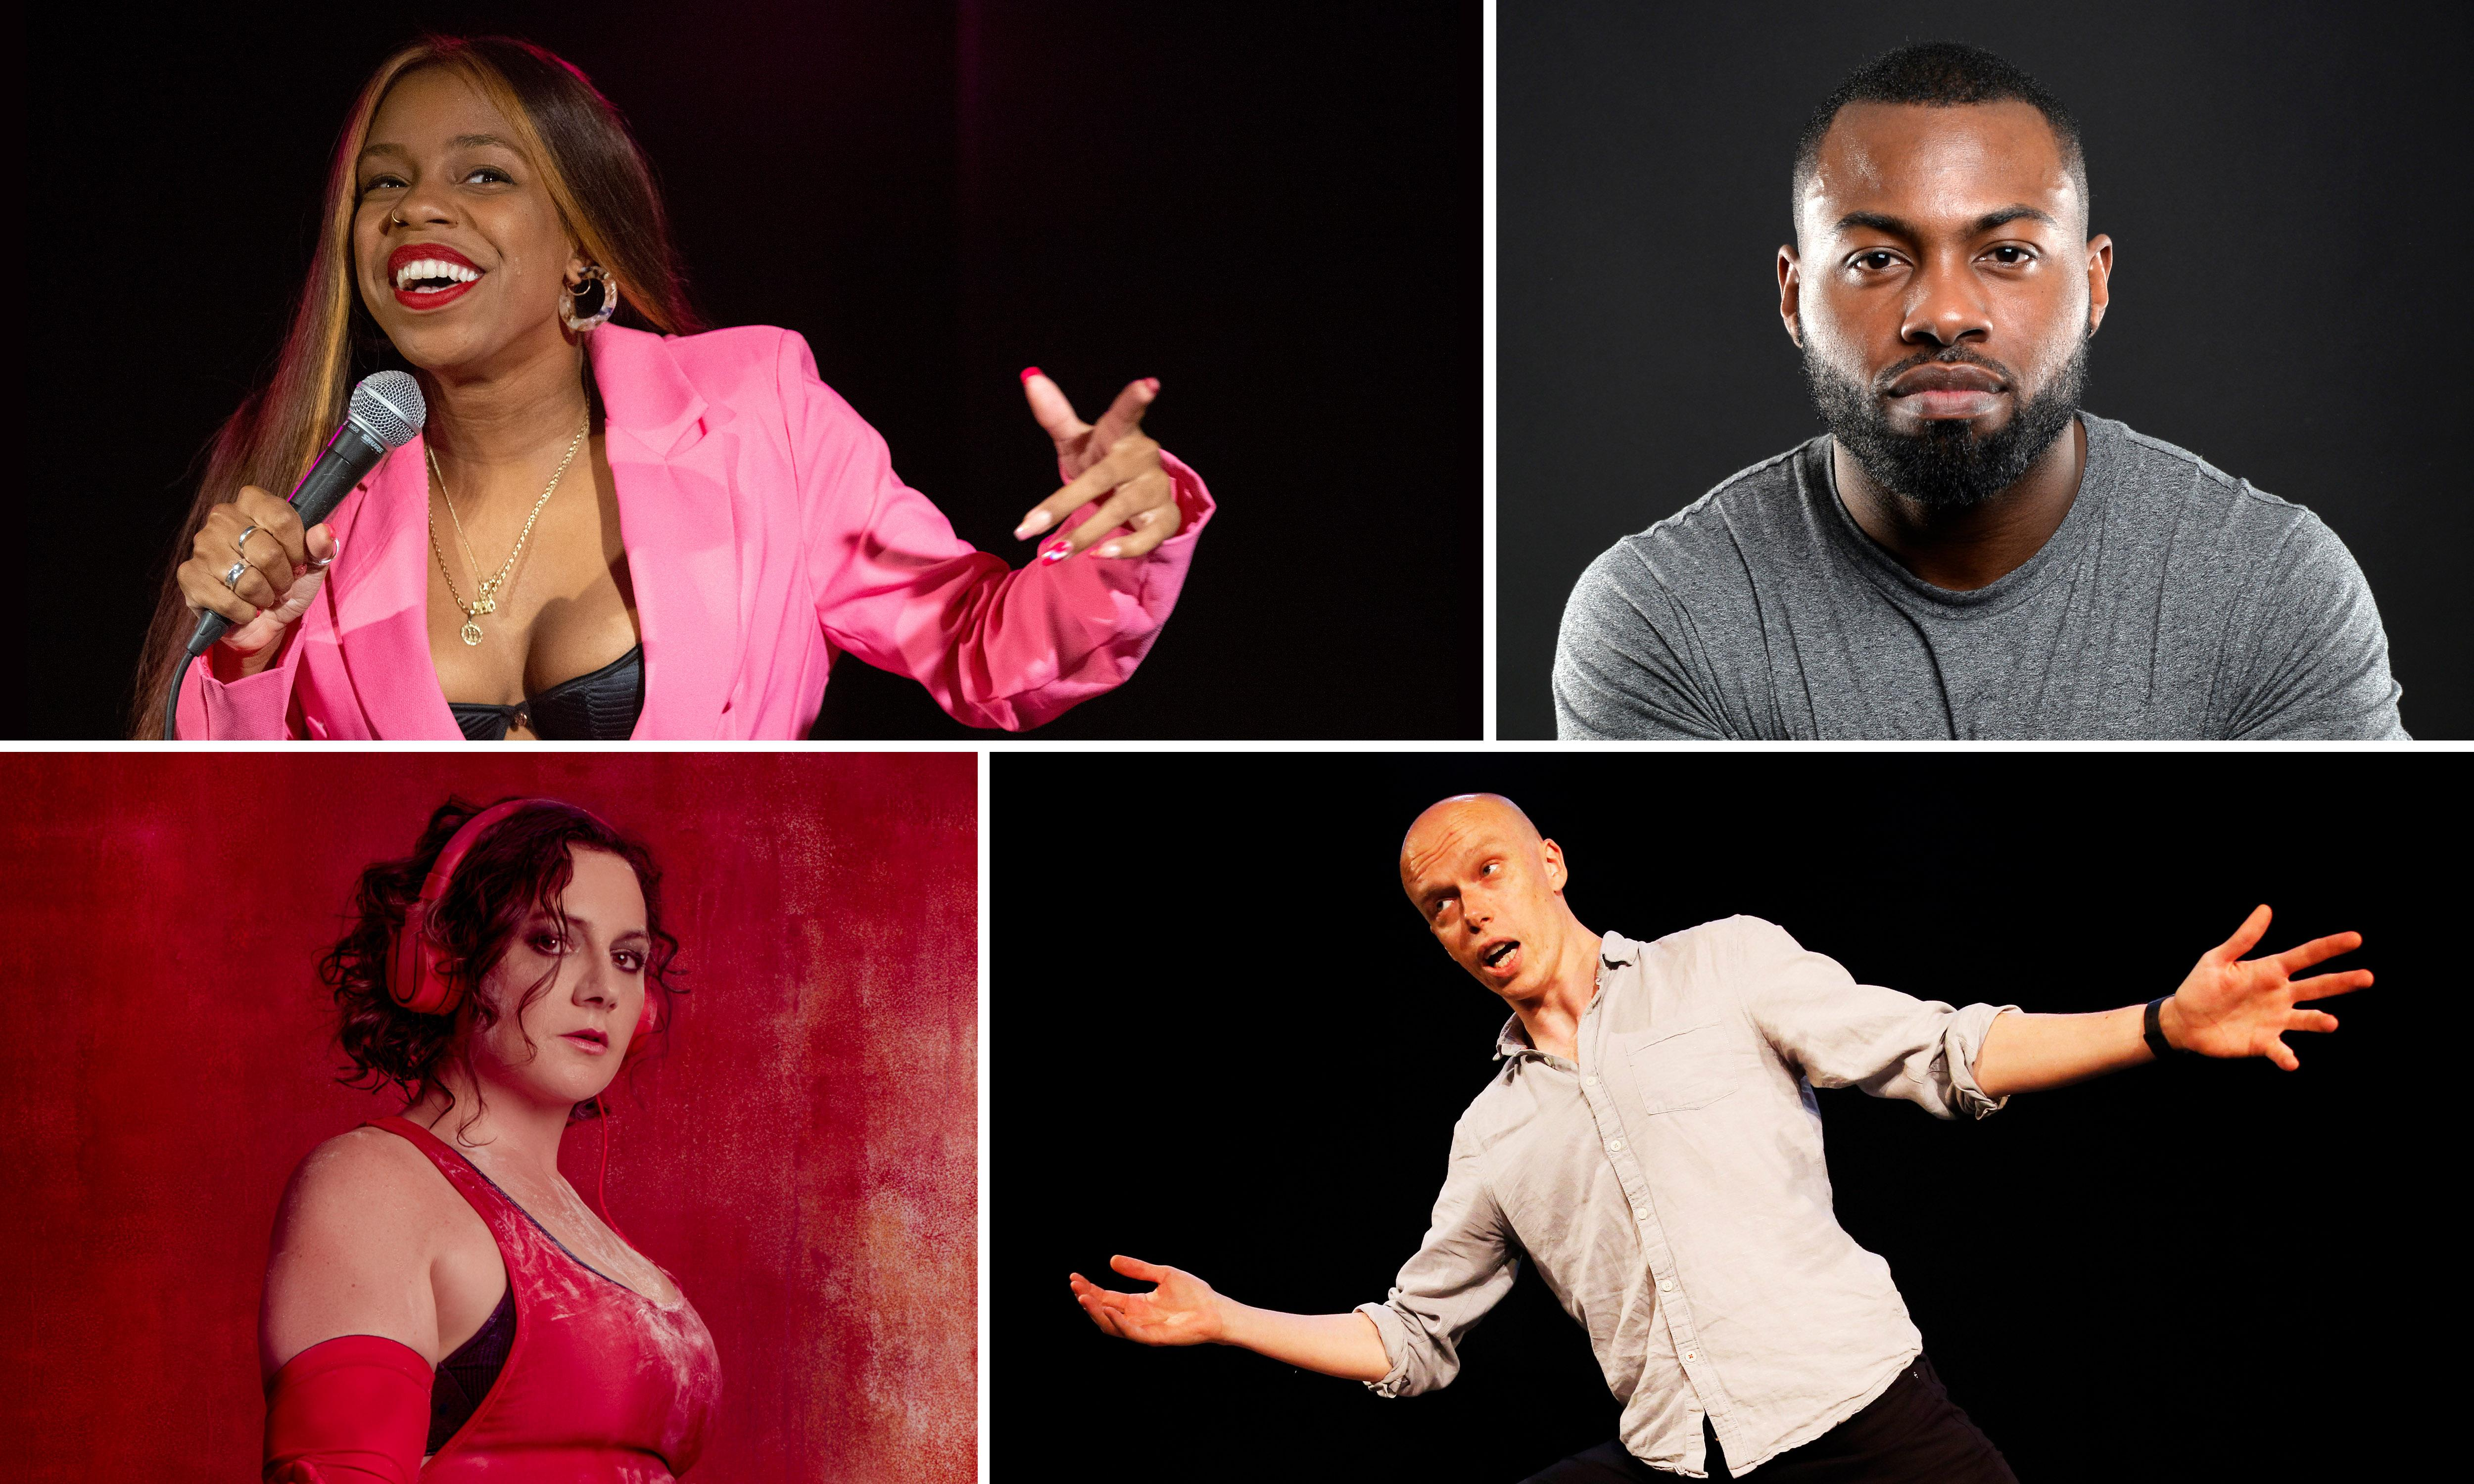 Edinburgh Comedy awards 2019: surrealists, standups and sausage act vie for prize